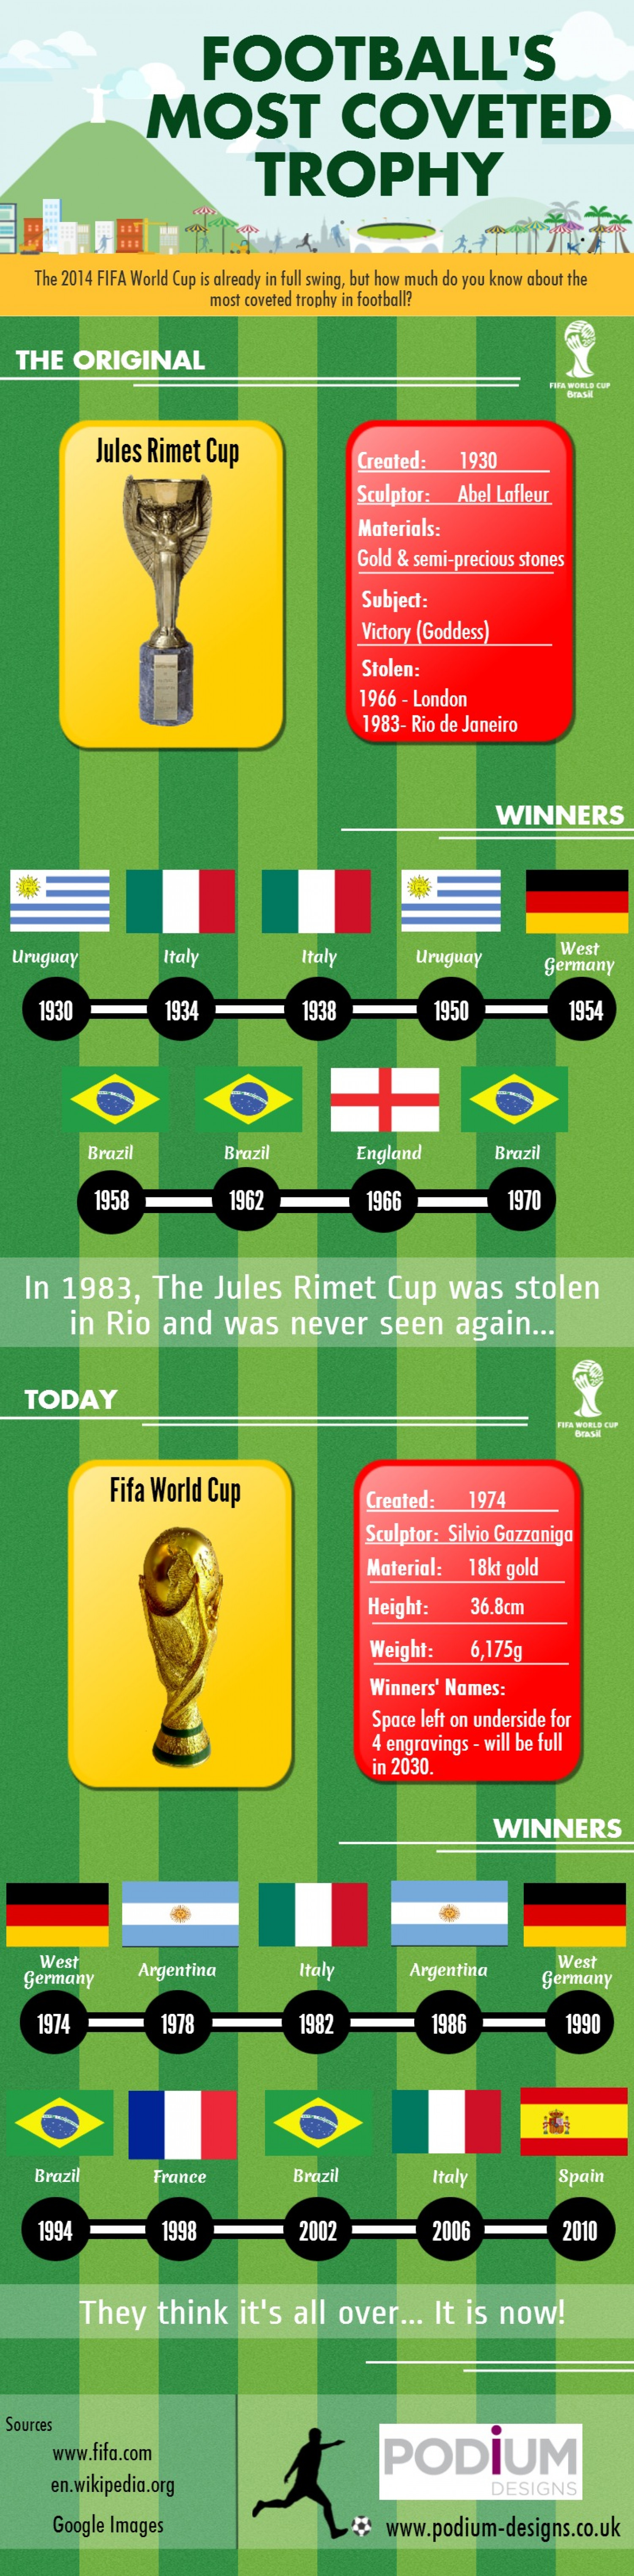 Football's Most Coveted Trophy Infographic